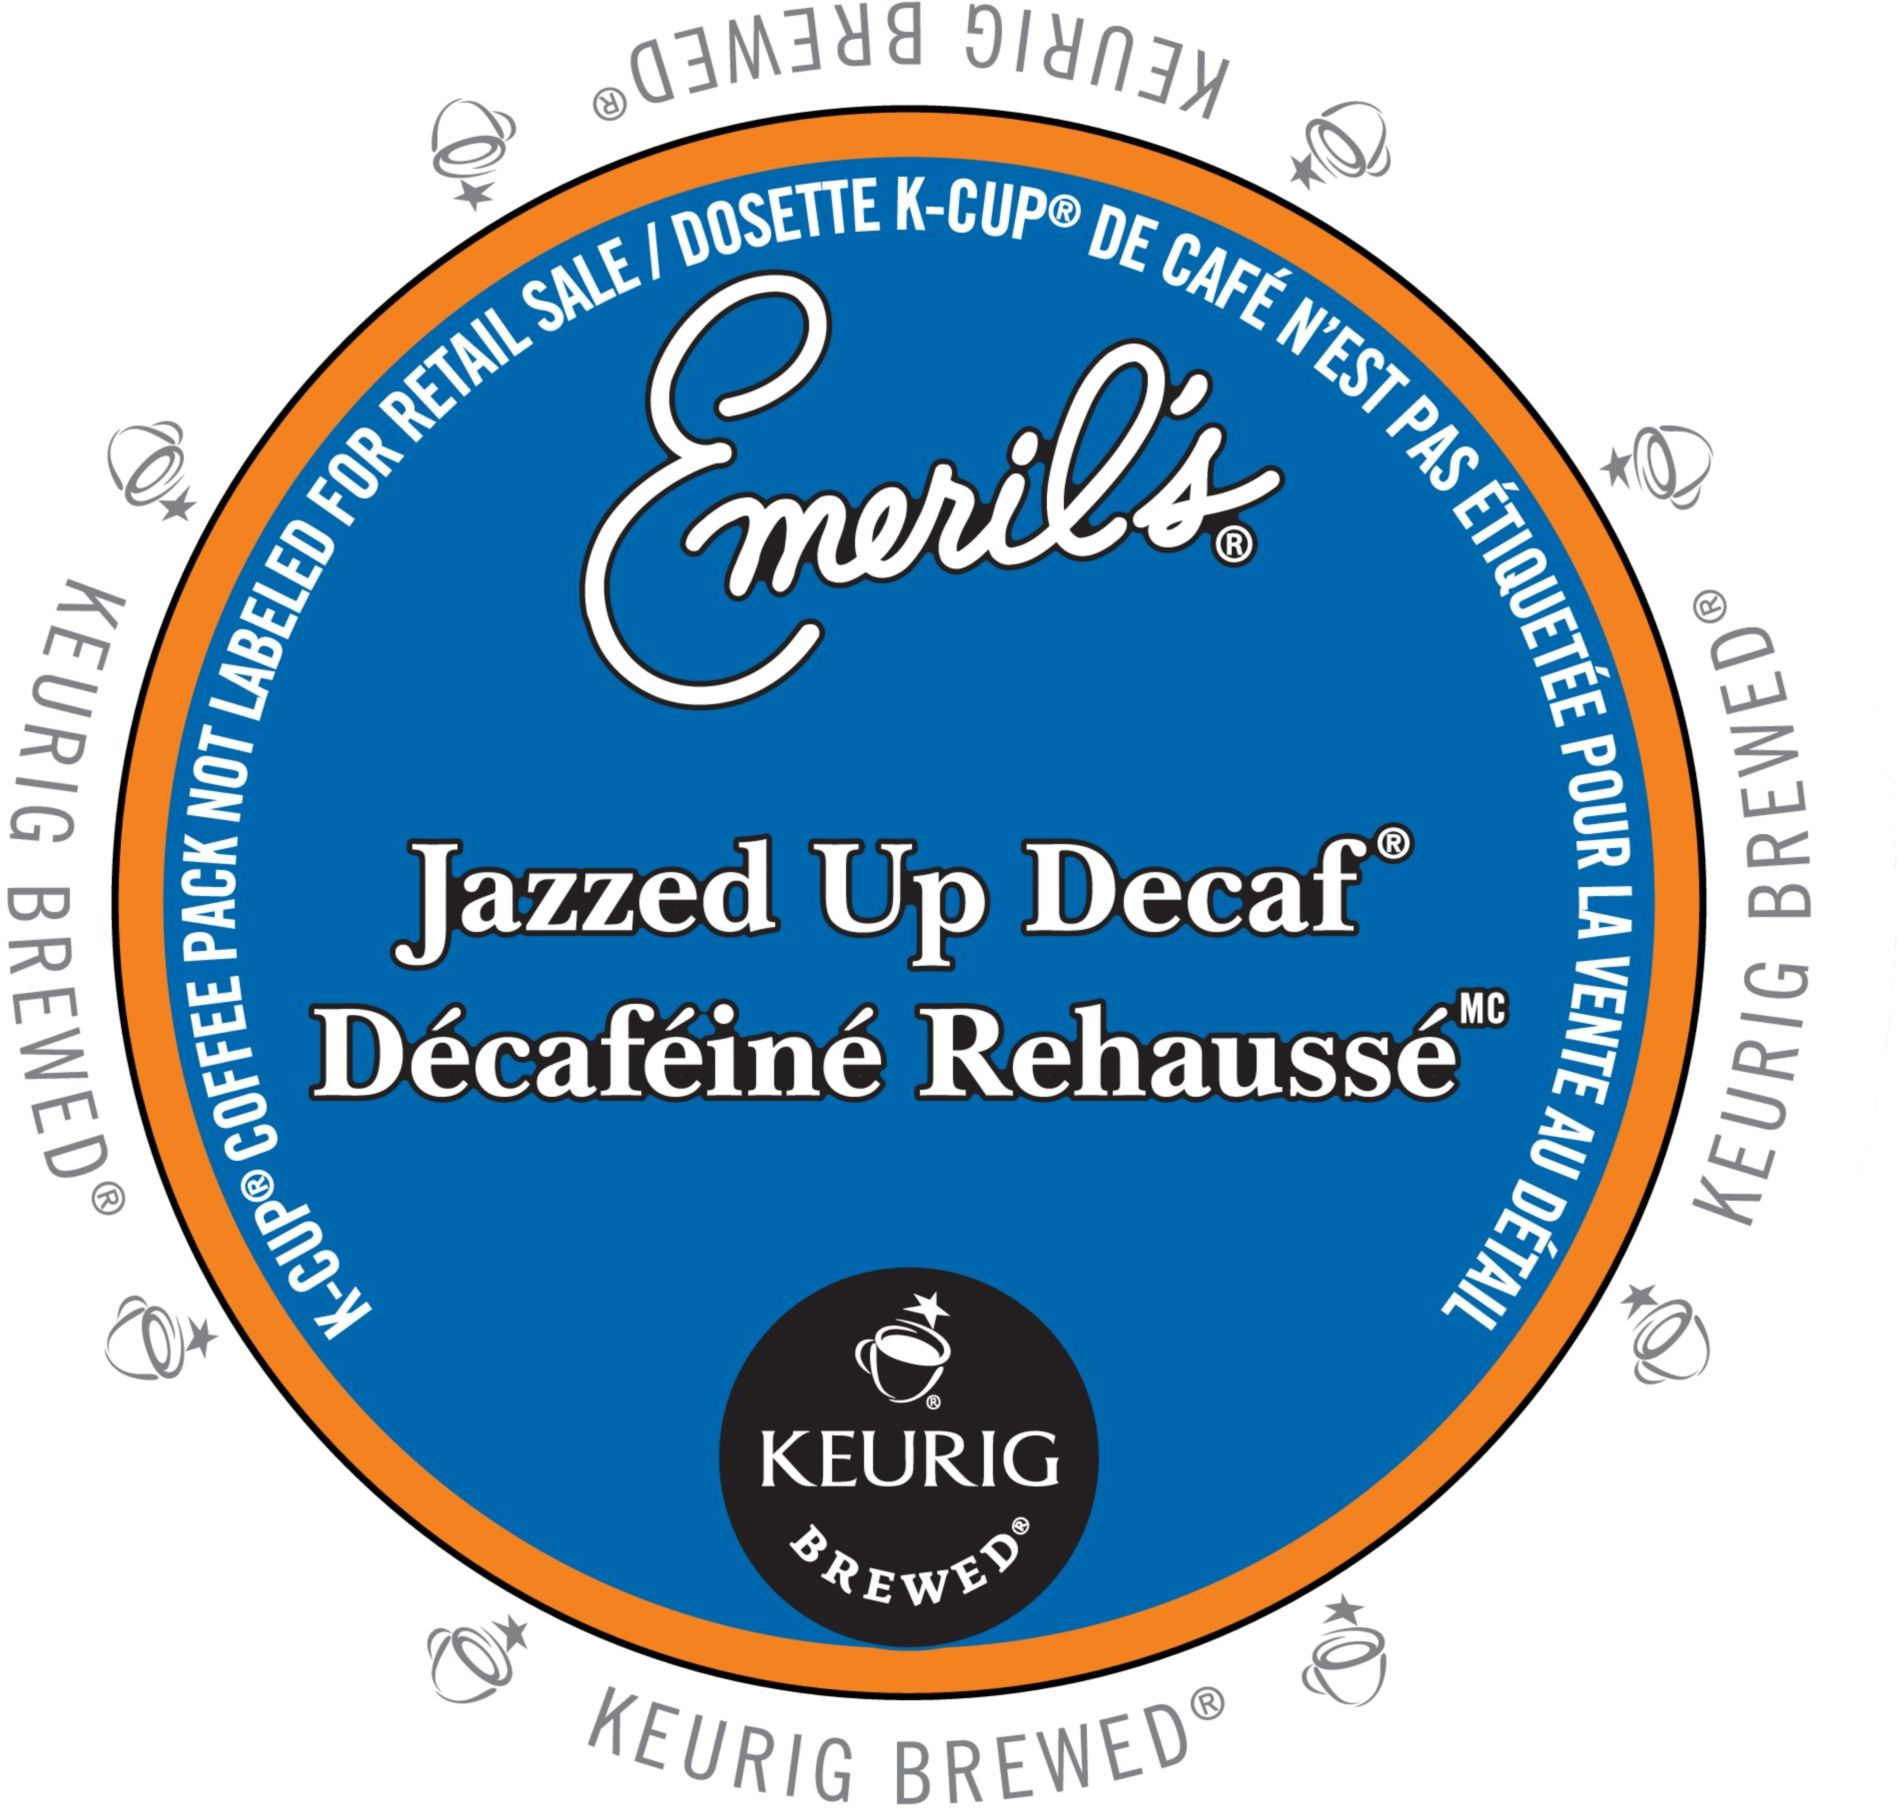 Emeril's Jazzed Up Decaf Coffee, K-Cup Portion Pack for Keurig Brewers (96 Count) (4x16oz)